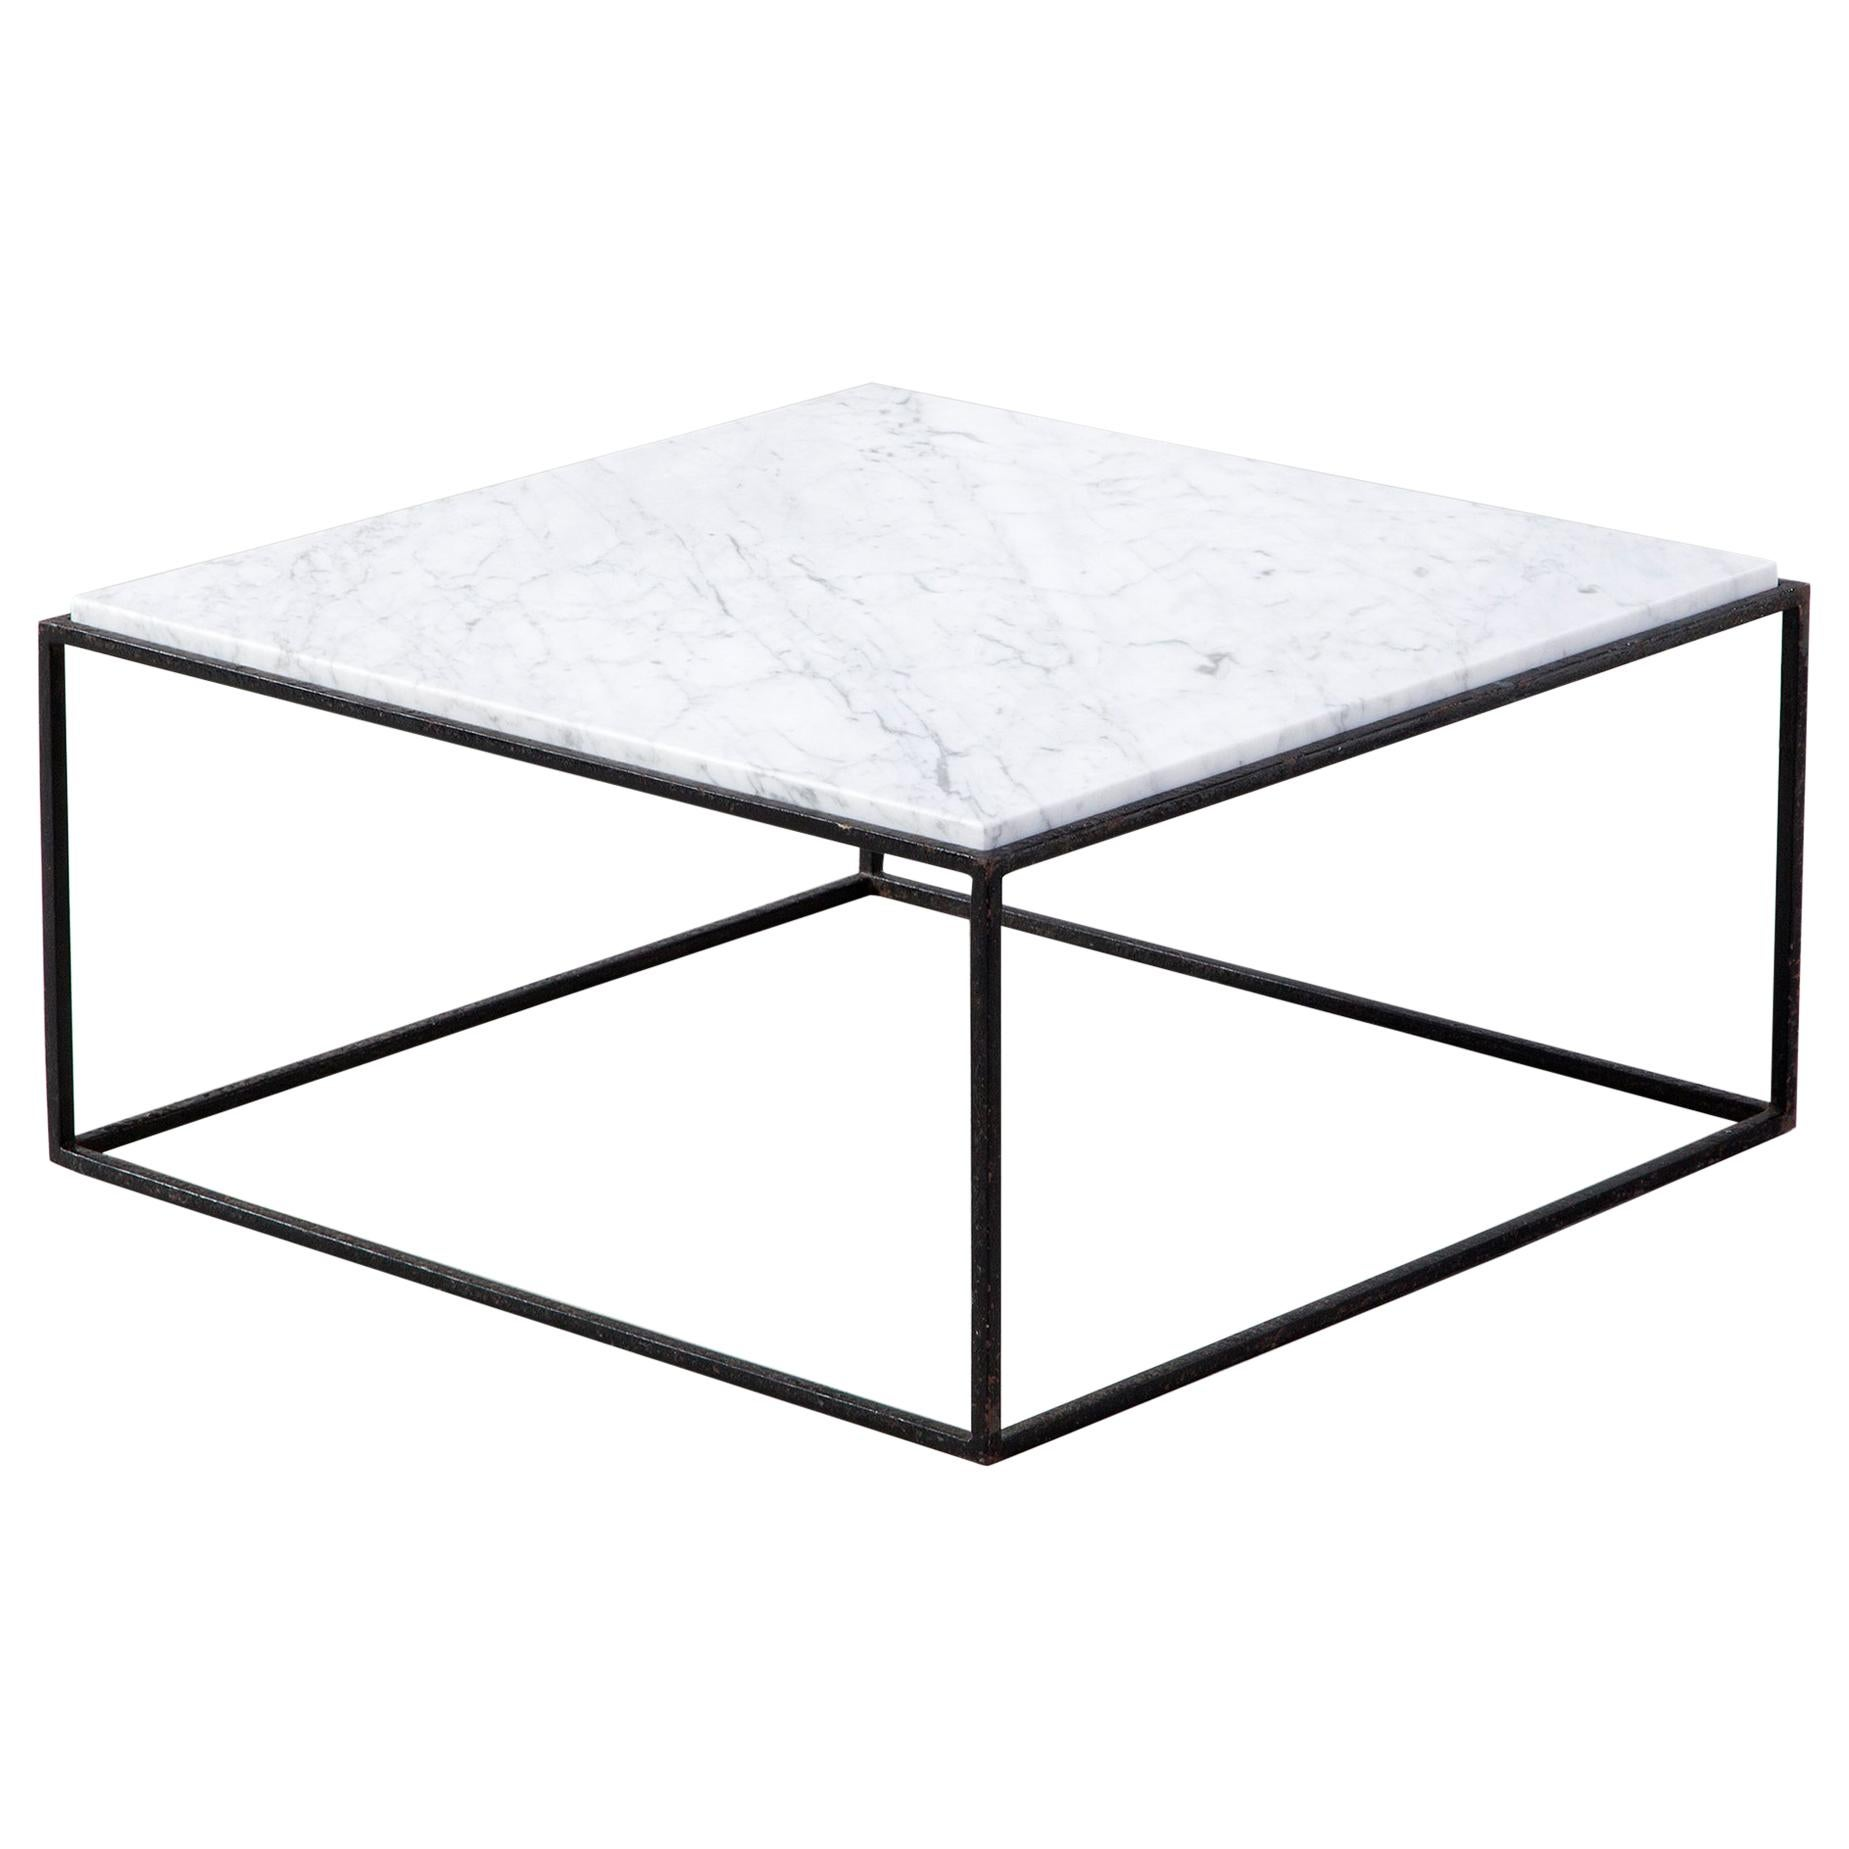 Square Coffee Table with Iron Base and Marble Top by Jorge Zalzupi, circa 1960